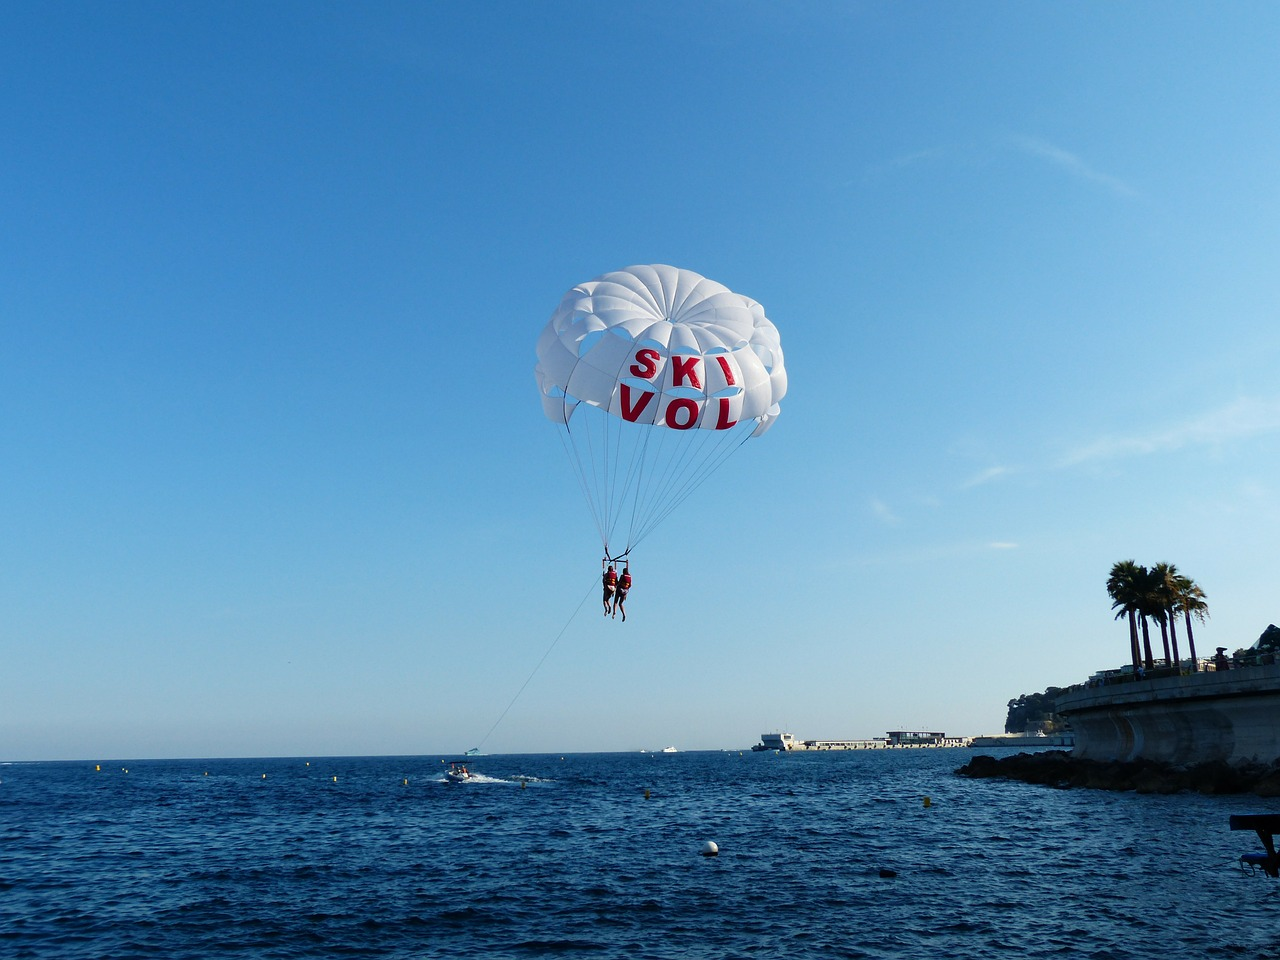 parasailing controllable parachuting high free photo